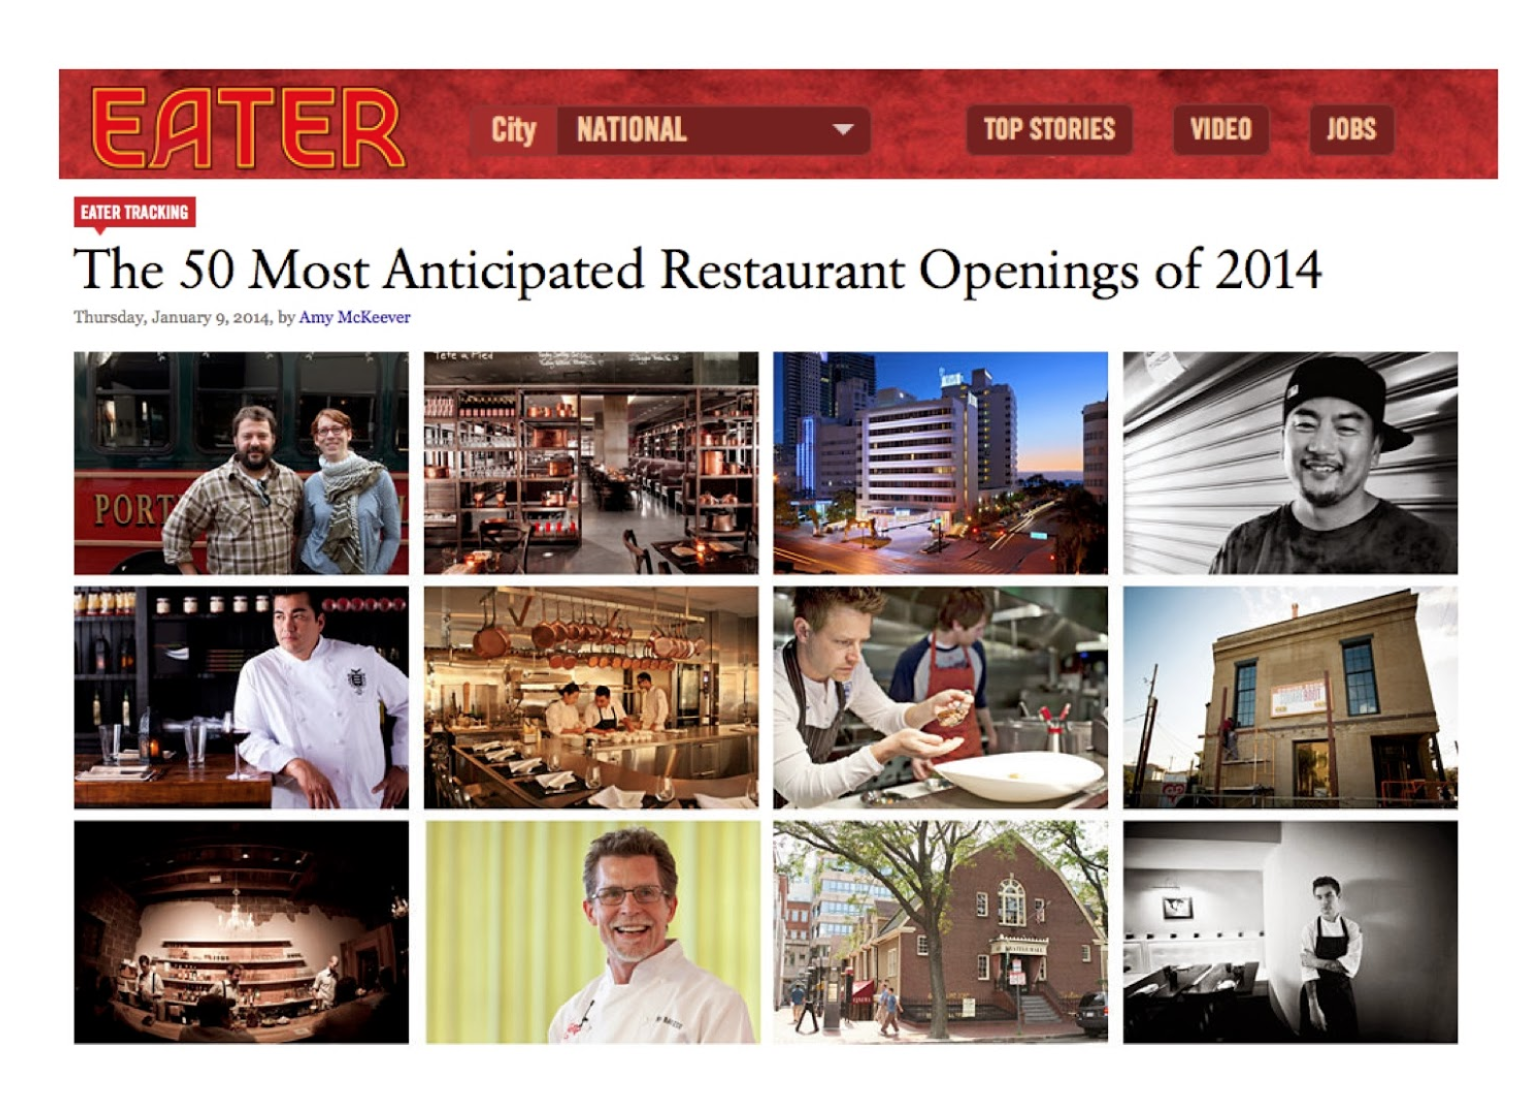 Screenshot of The 50 Most Anticipated Restaurant Openings of 2014 Webpage